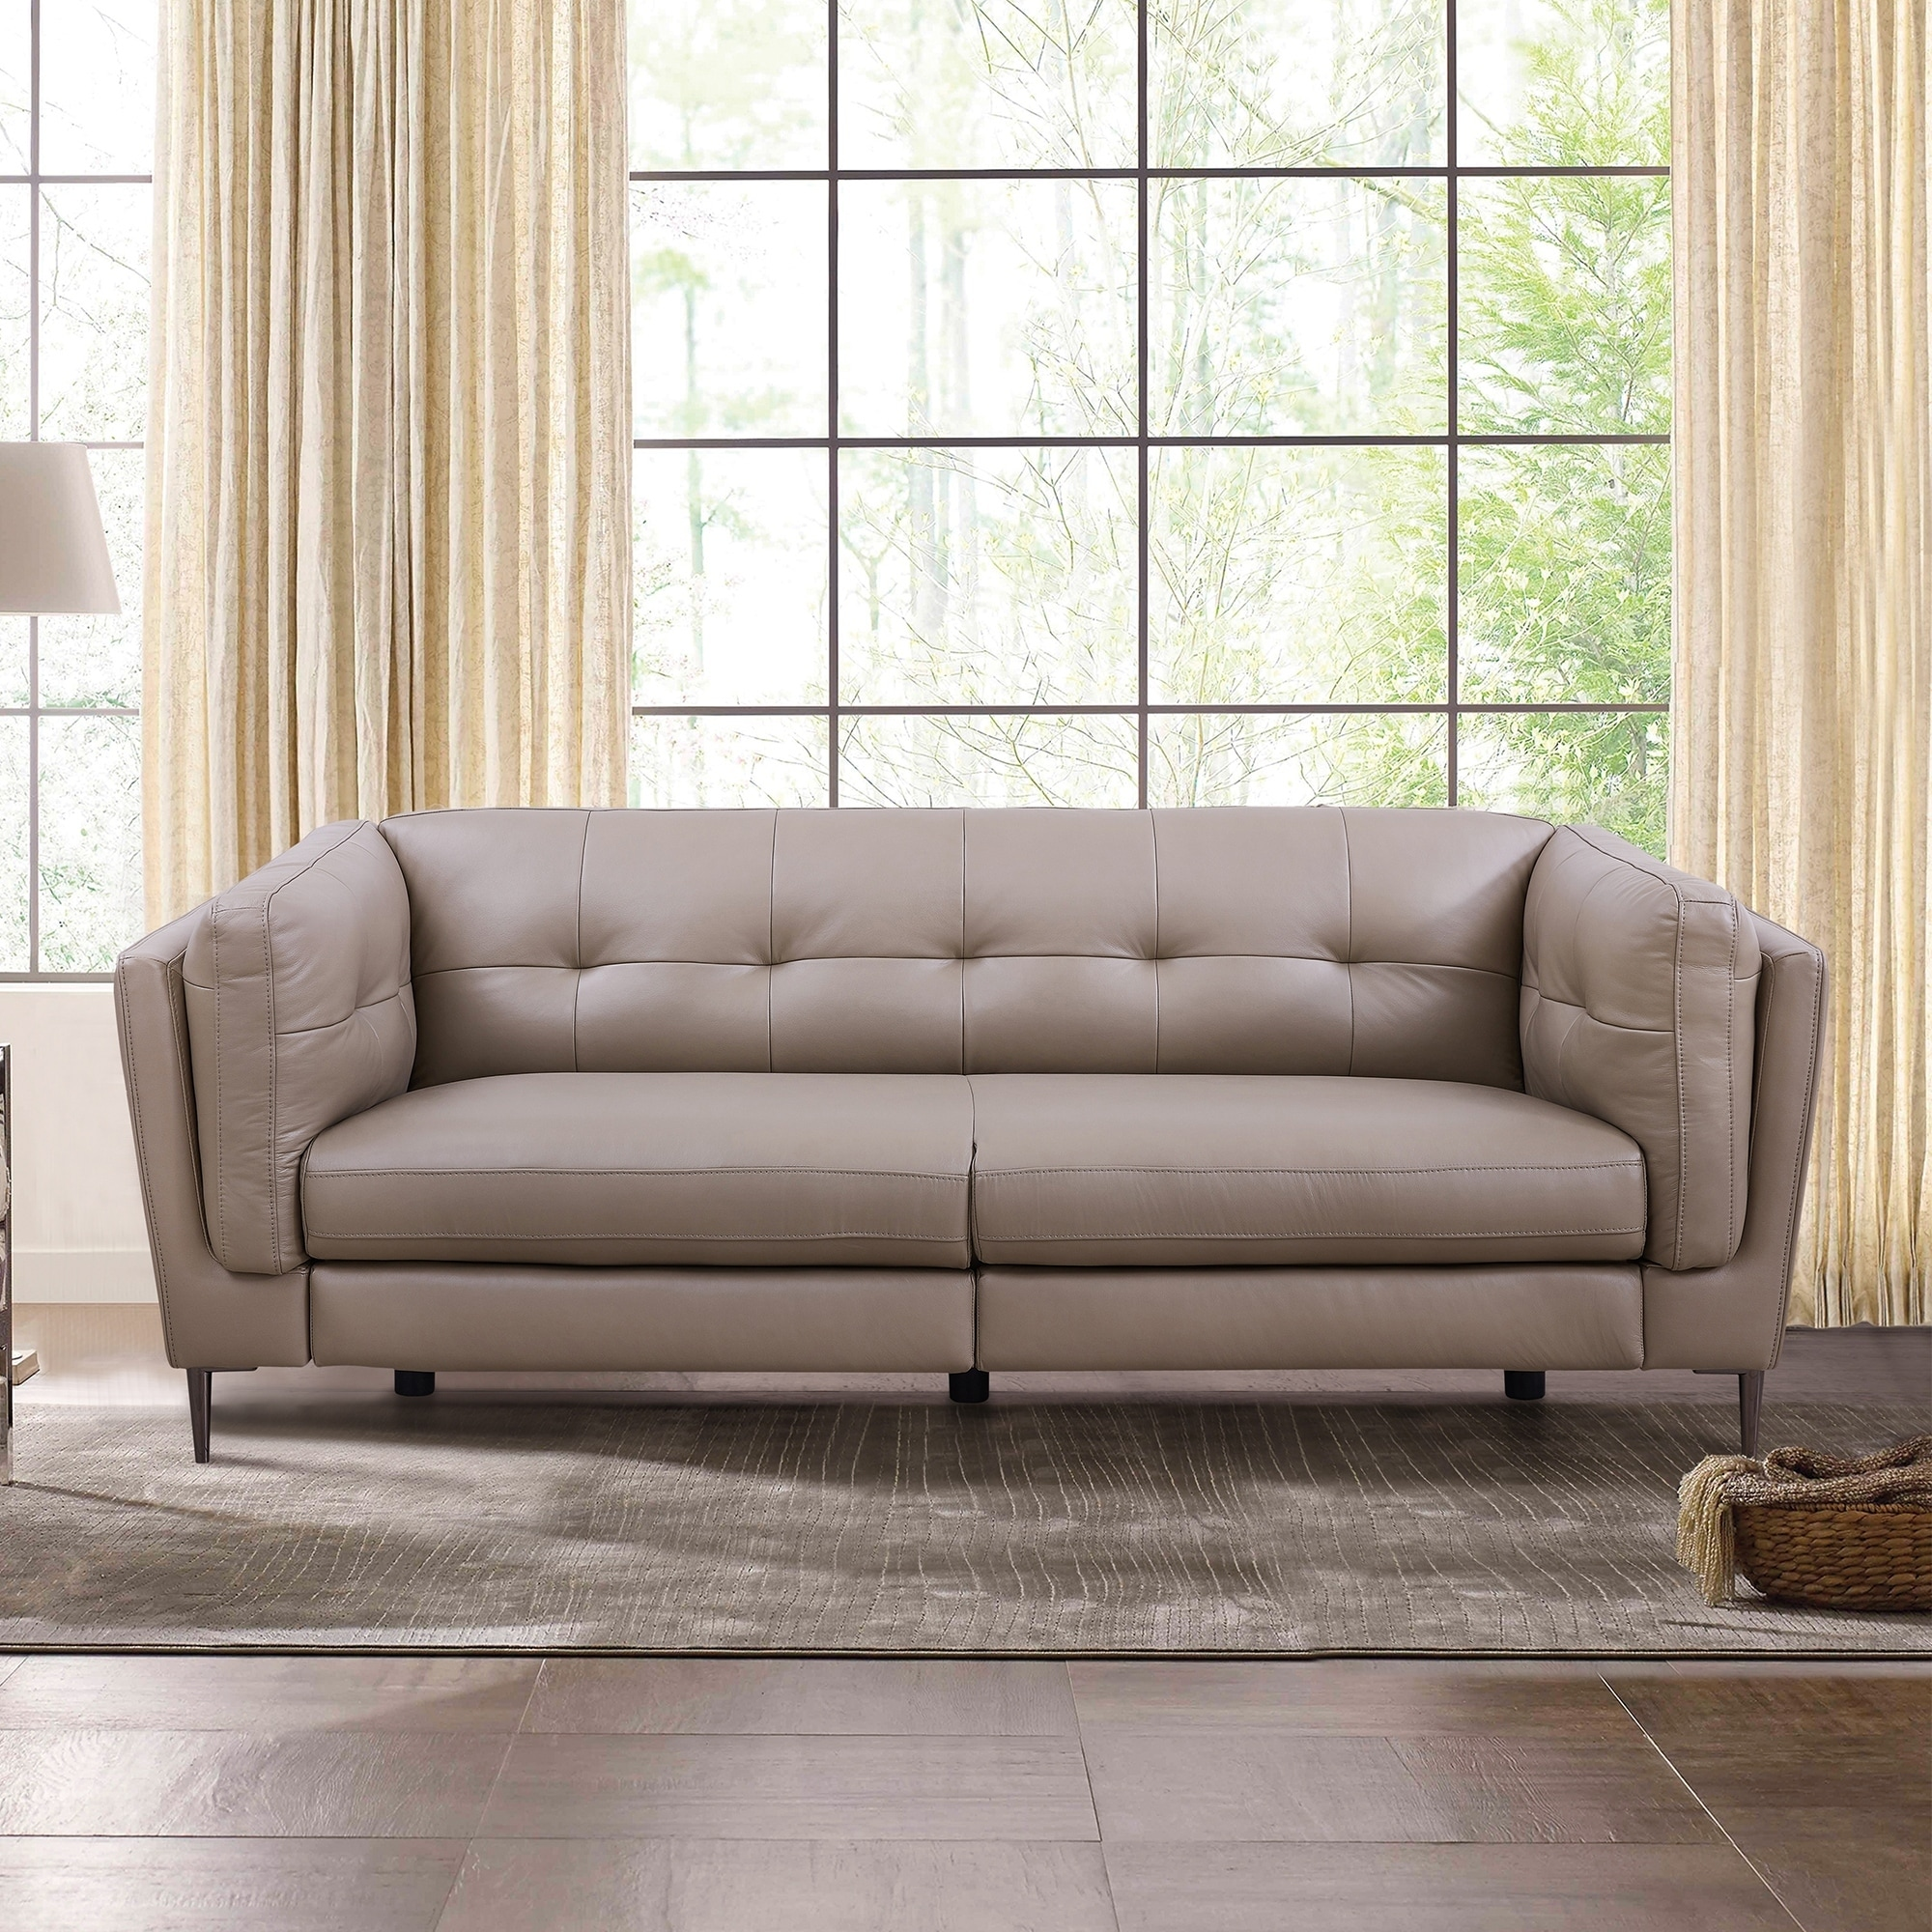 Primrose Contemporary Top Grain Leather Power Recliner Sofa With Usb